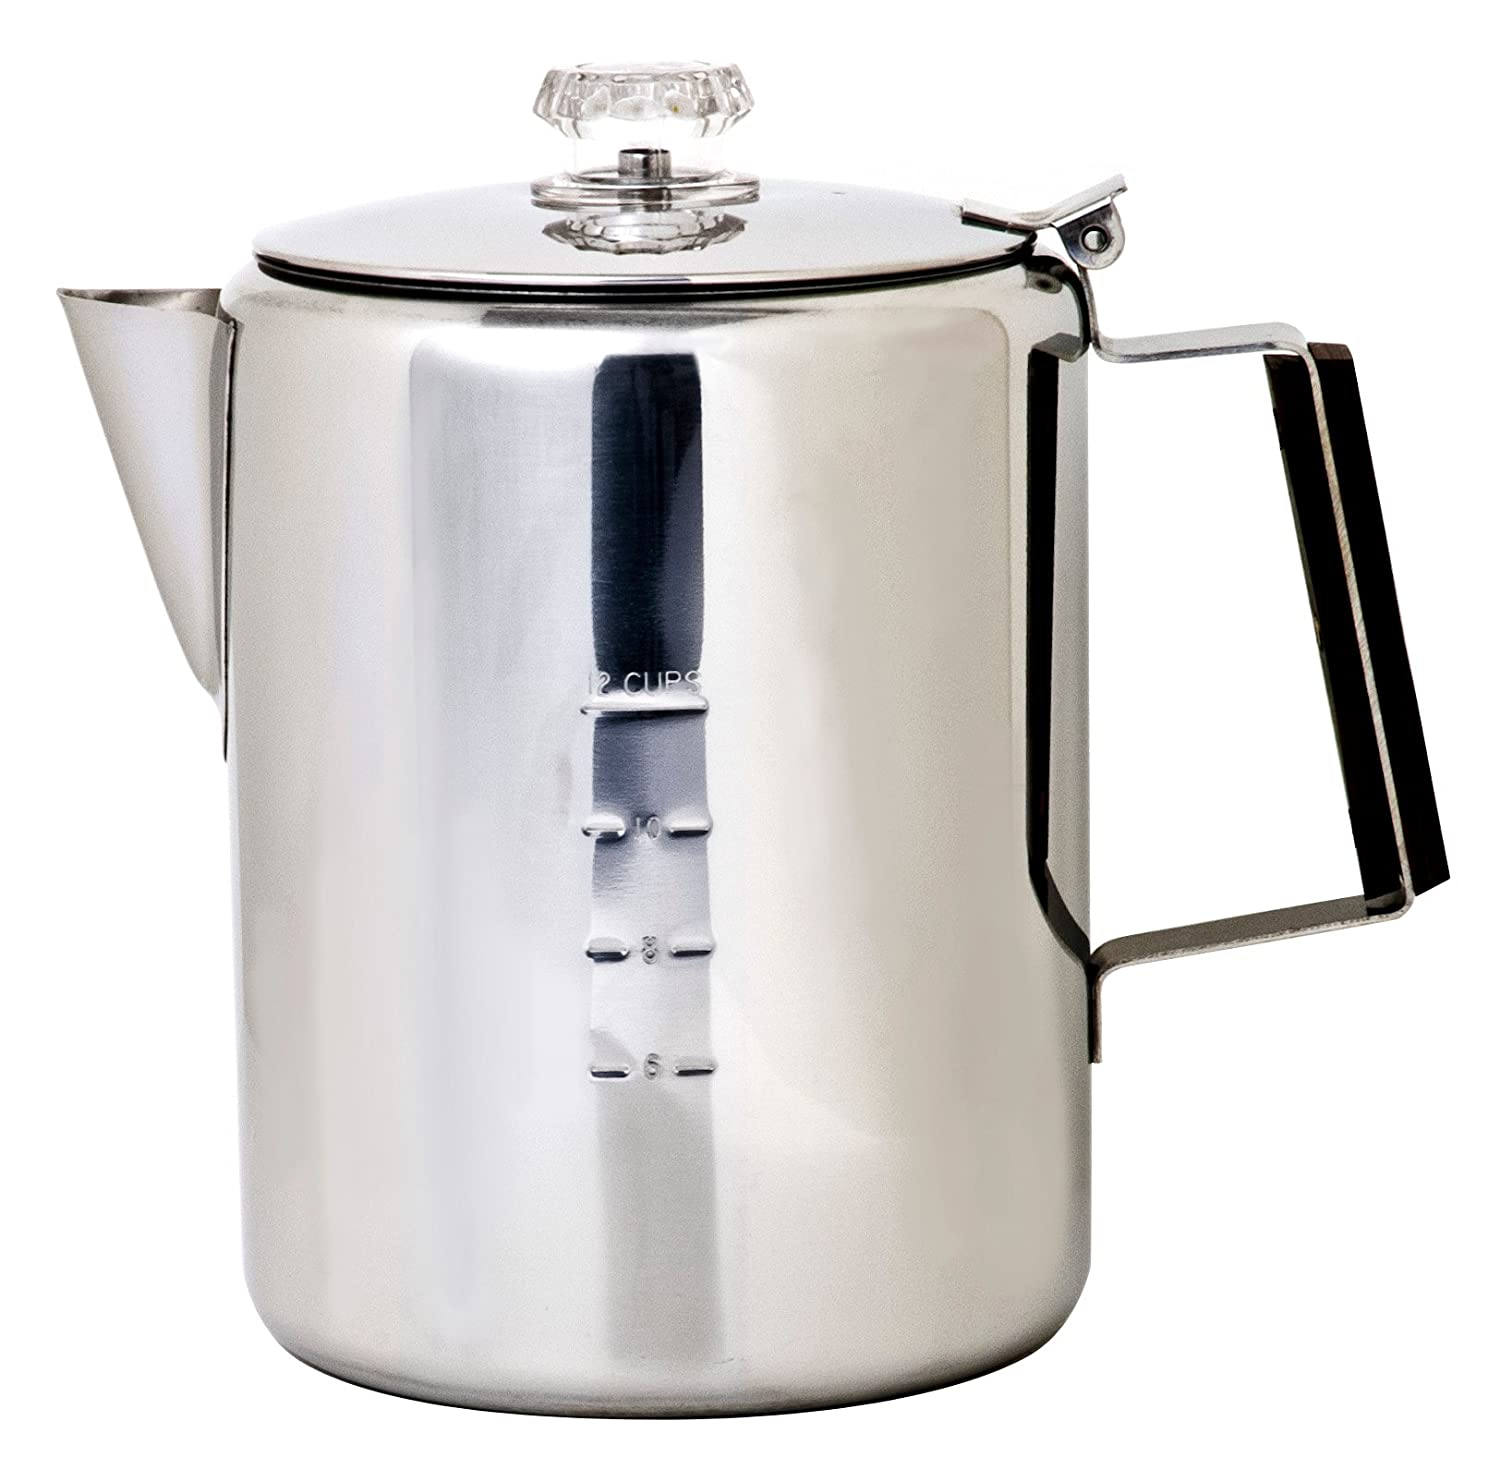 Chinook 41125 Timberline Coffee Percolator, Stainless Steel, 12 Cup